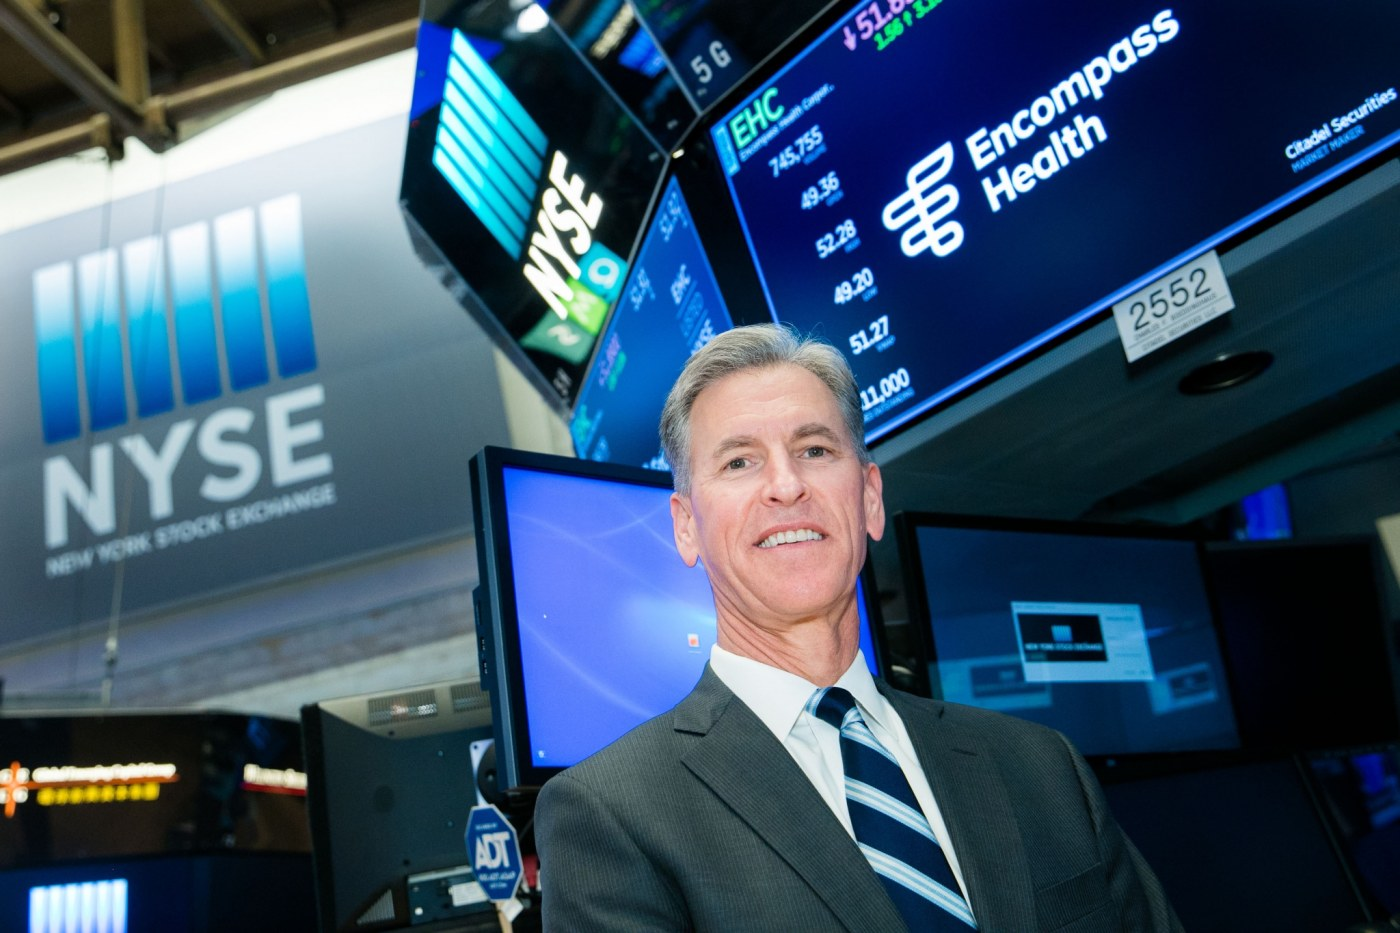 Encompass Health Corporation (NYSE:EHC) visits the New York Stock Exchange (NYSE) to highlight their rebrand and name change from HealthSouth. To mark the occasion President & CEO, Mark Tarr, rings The Closing Bell®. (Encompass Health)